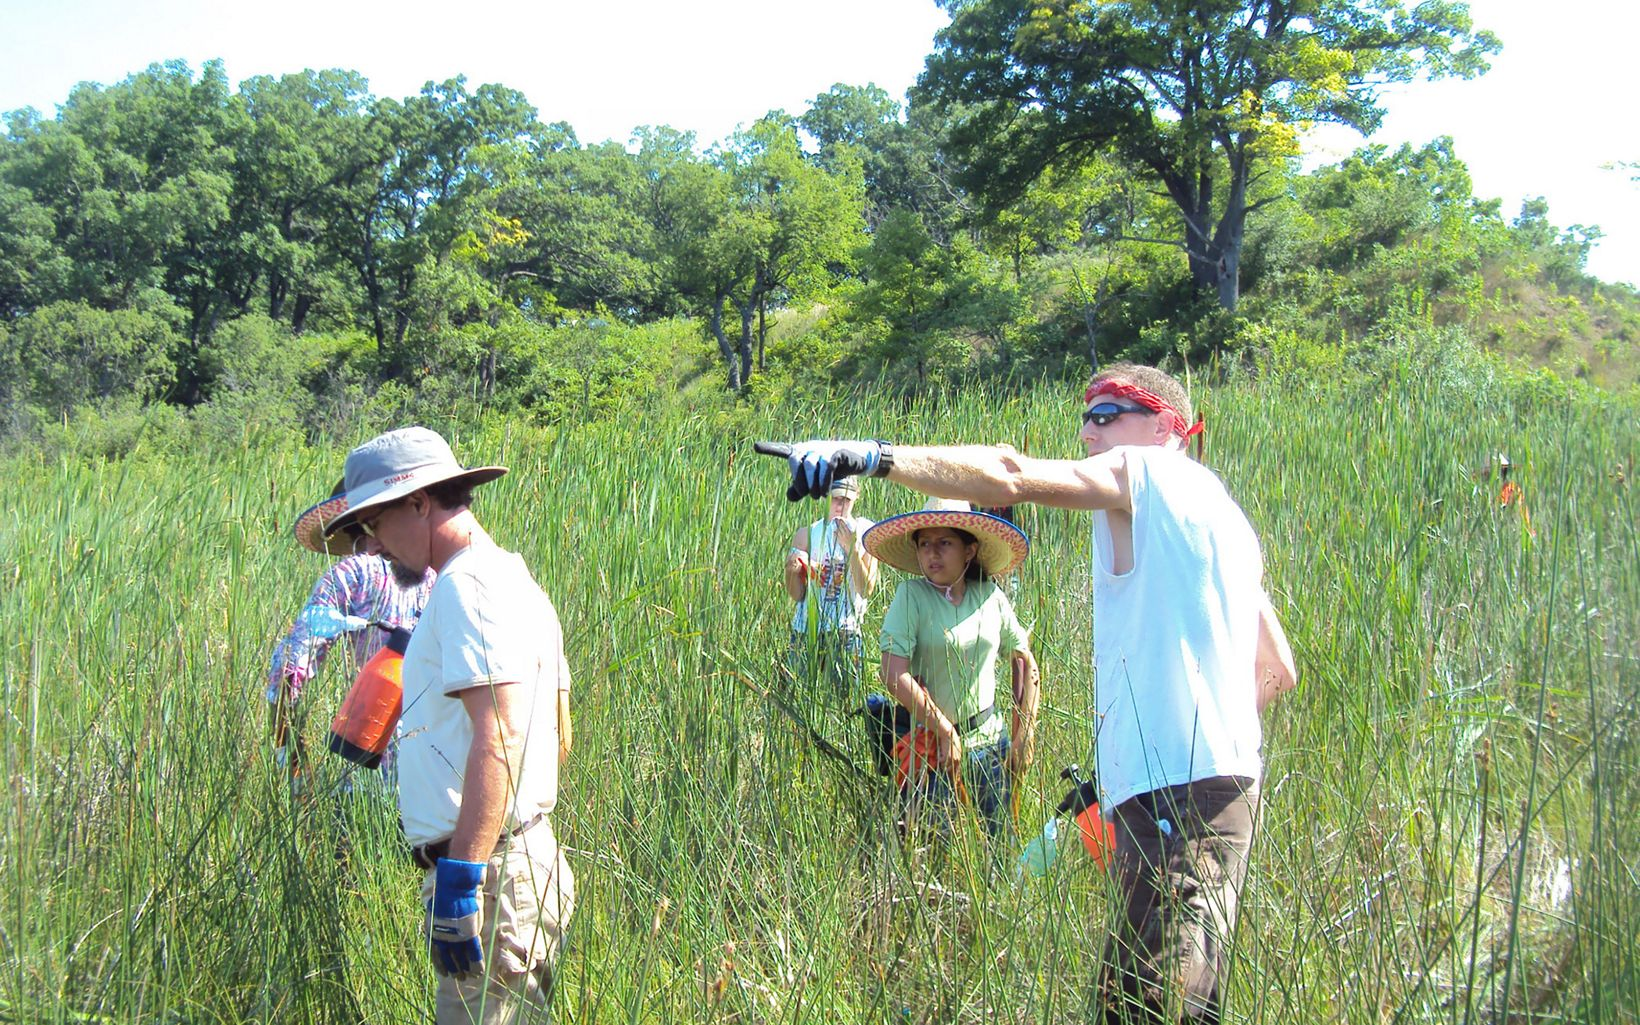 In sunglasses, work gloves and with a red bandana on his head, Craig Annen shows three young female LEAF interns where to start controlling narrow-leaf cattails.